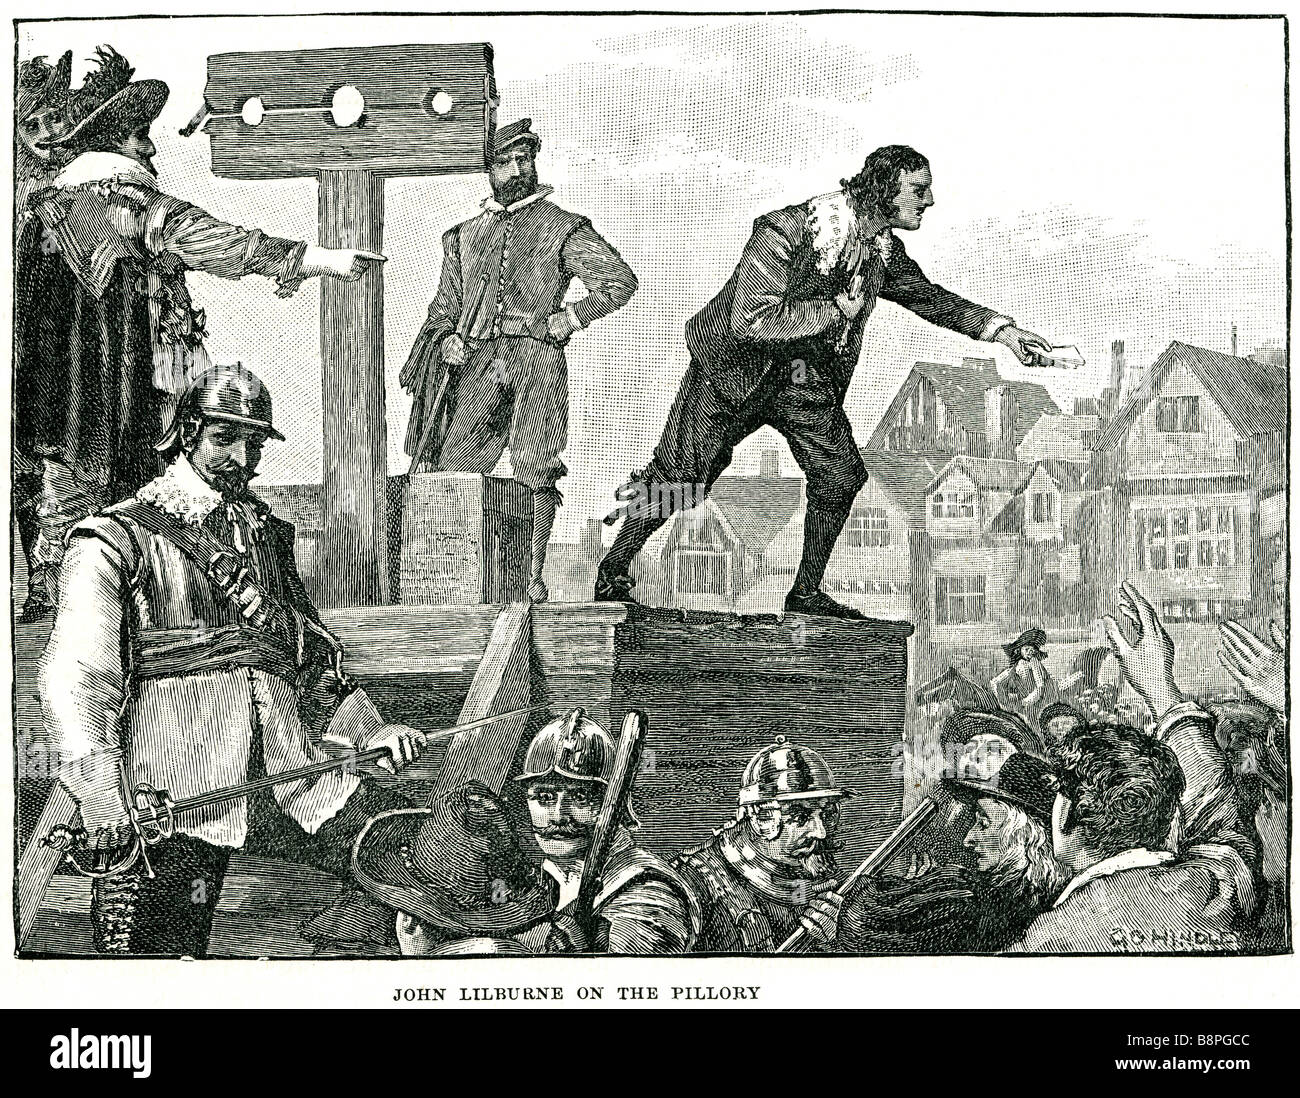 john lilburne on the pillory John Lilburne (1614 – 29 August 1657), also  known as Freeborn John, was an agitator in England befo